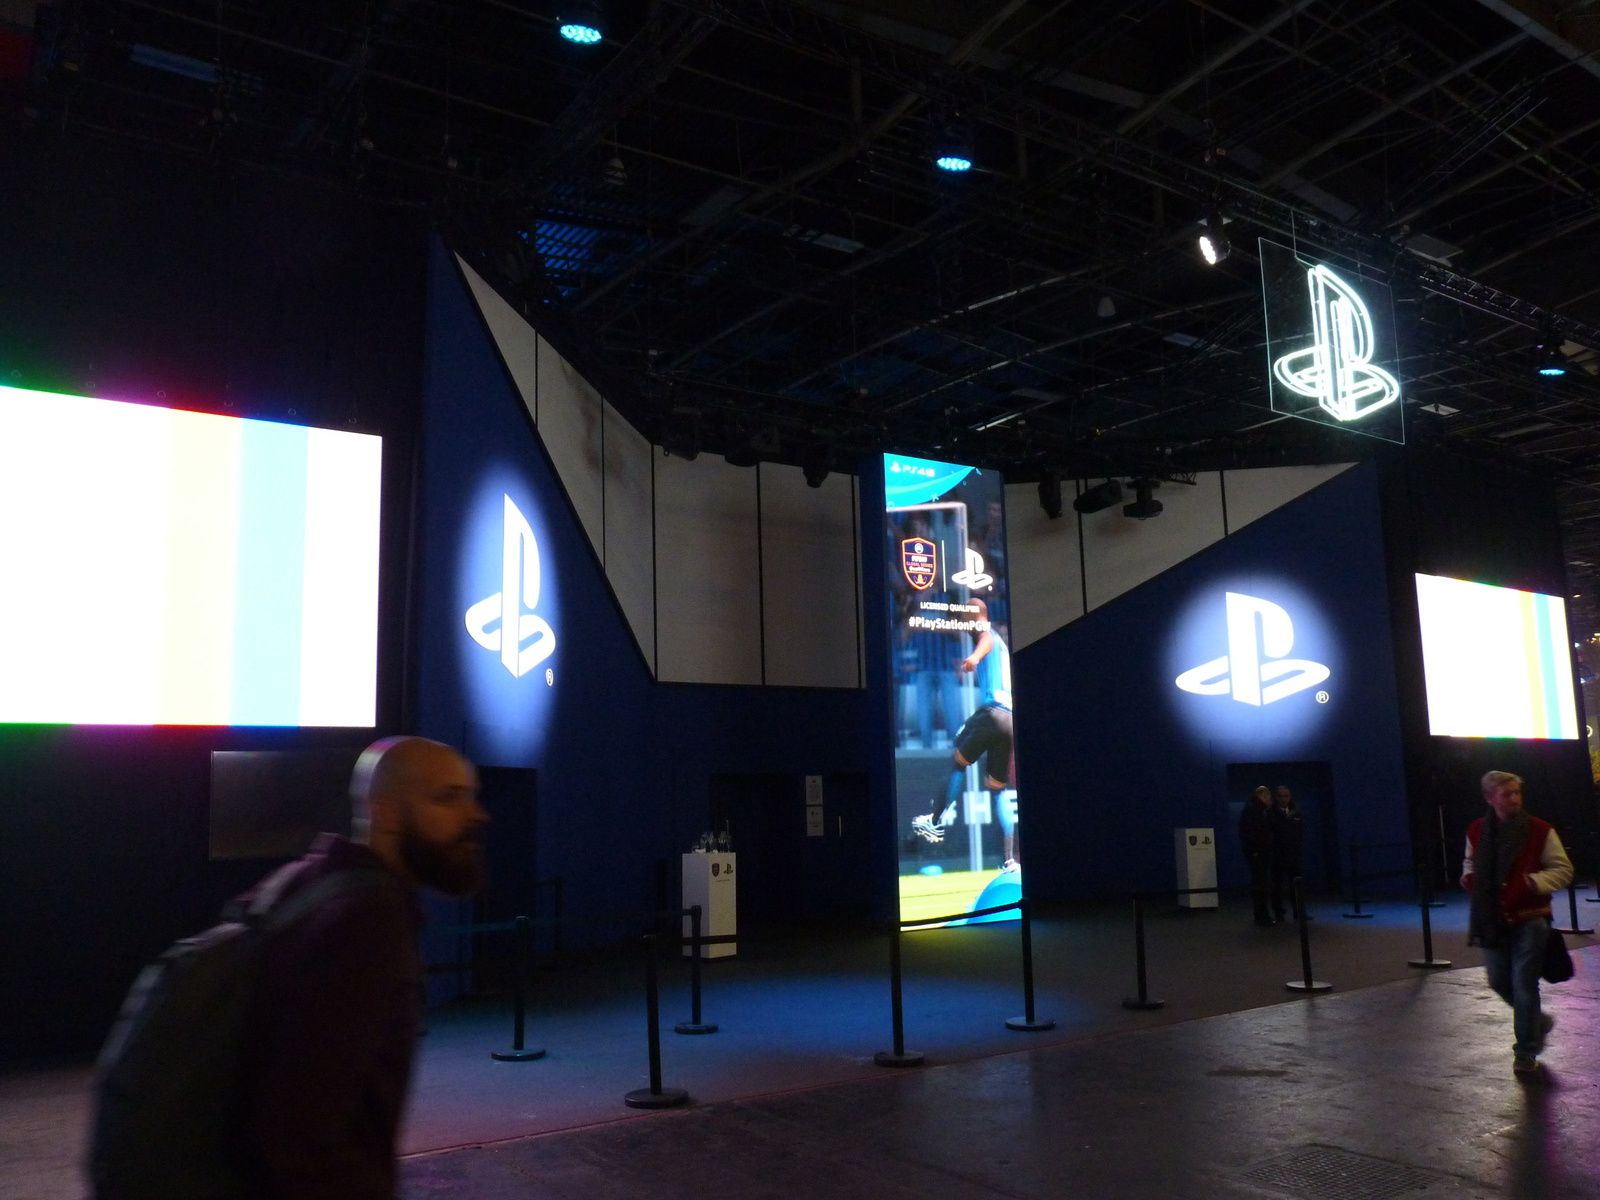 [PARIS GAMES WEEK 2018] Les photos de la soirée Presse